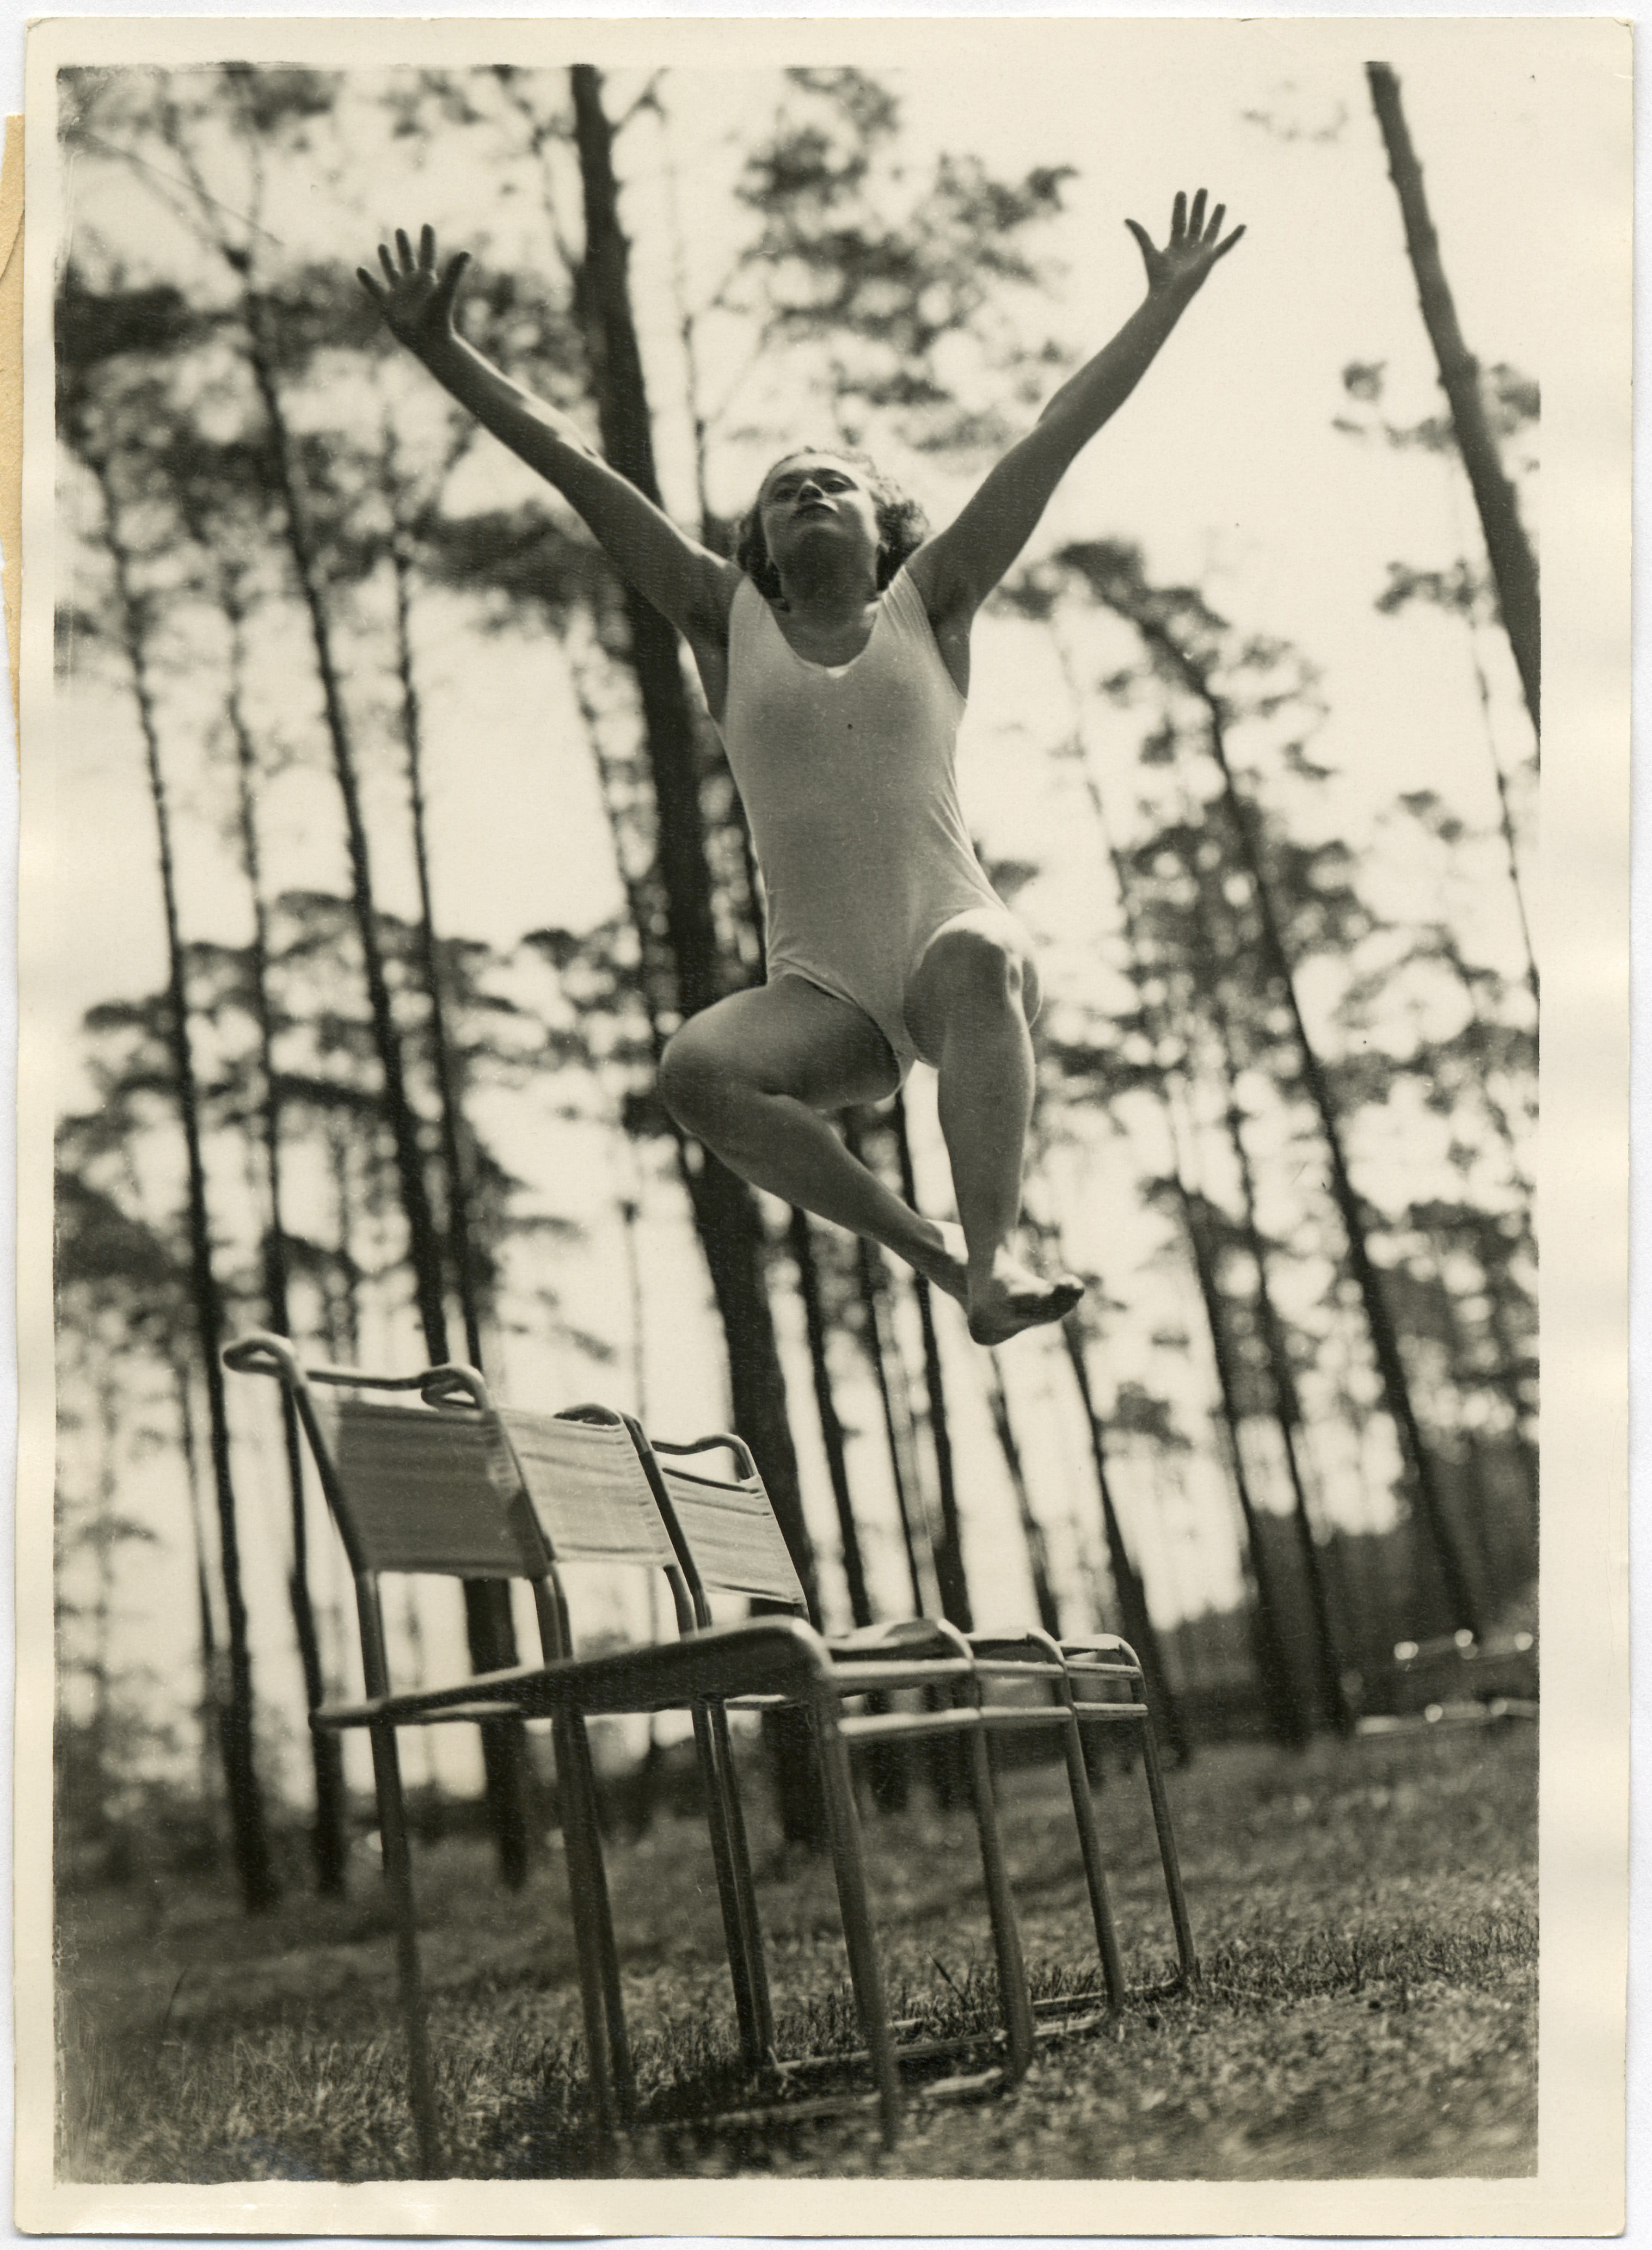 Pacific & Atlantic Photo (photo), Marcel Breuer (chair design), Gymnastics in the forest: exemplary jump over 3 chairs, after 1927 / Bauhaus-Archiv Berlin